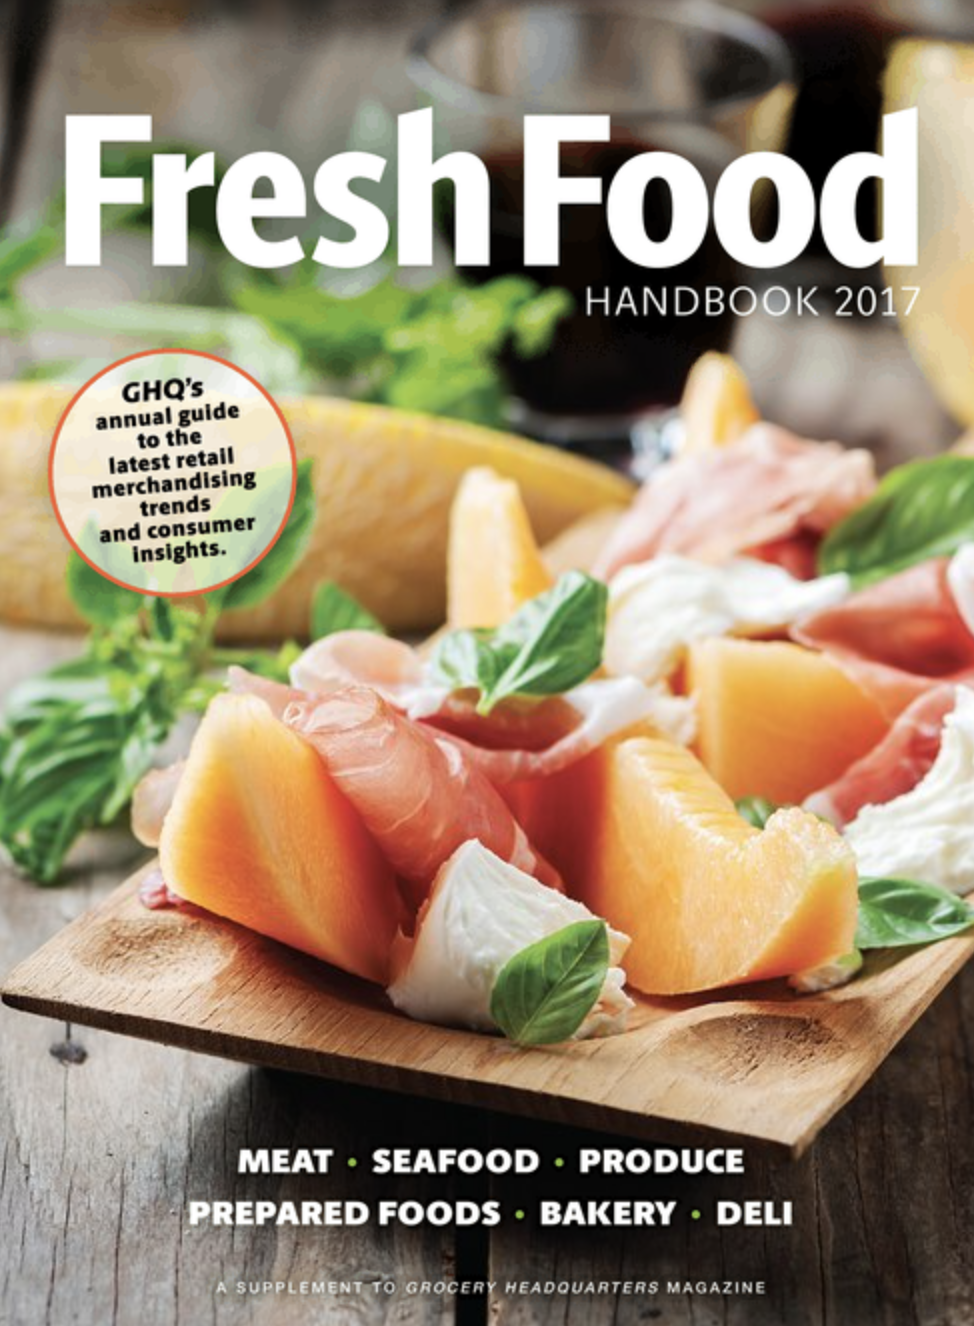 Winsight Grocery Business Magazine Fresh Food Handbook 2017 Issue